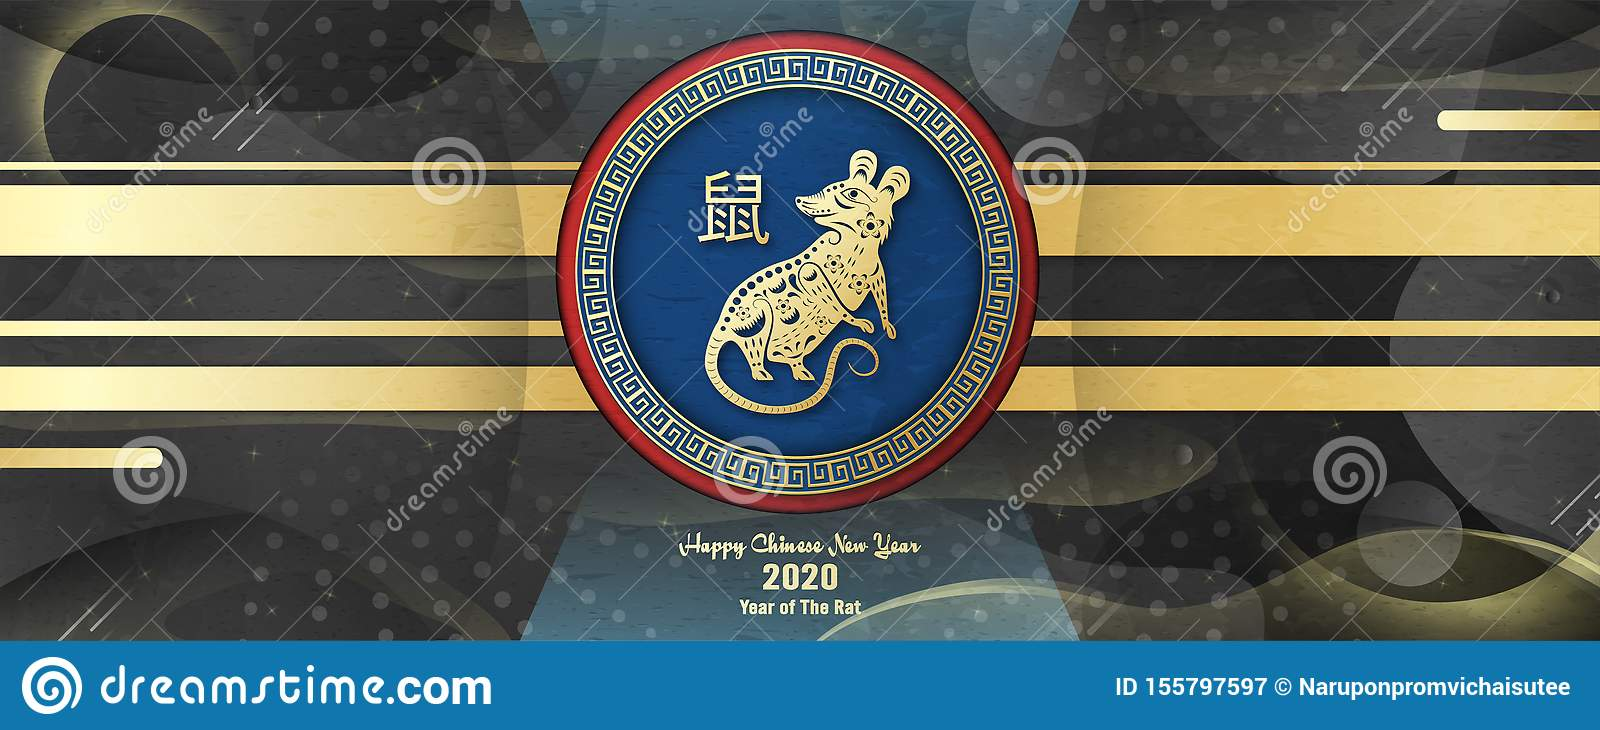 Happy Chinese new year 2020, year of the rat. Template design for cover book, invitation, poster, flyer, premium packaging. Vector